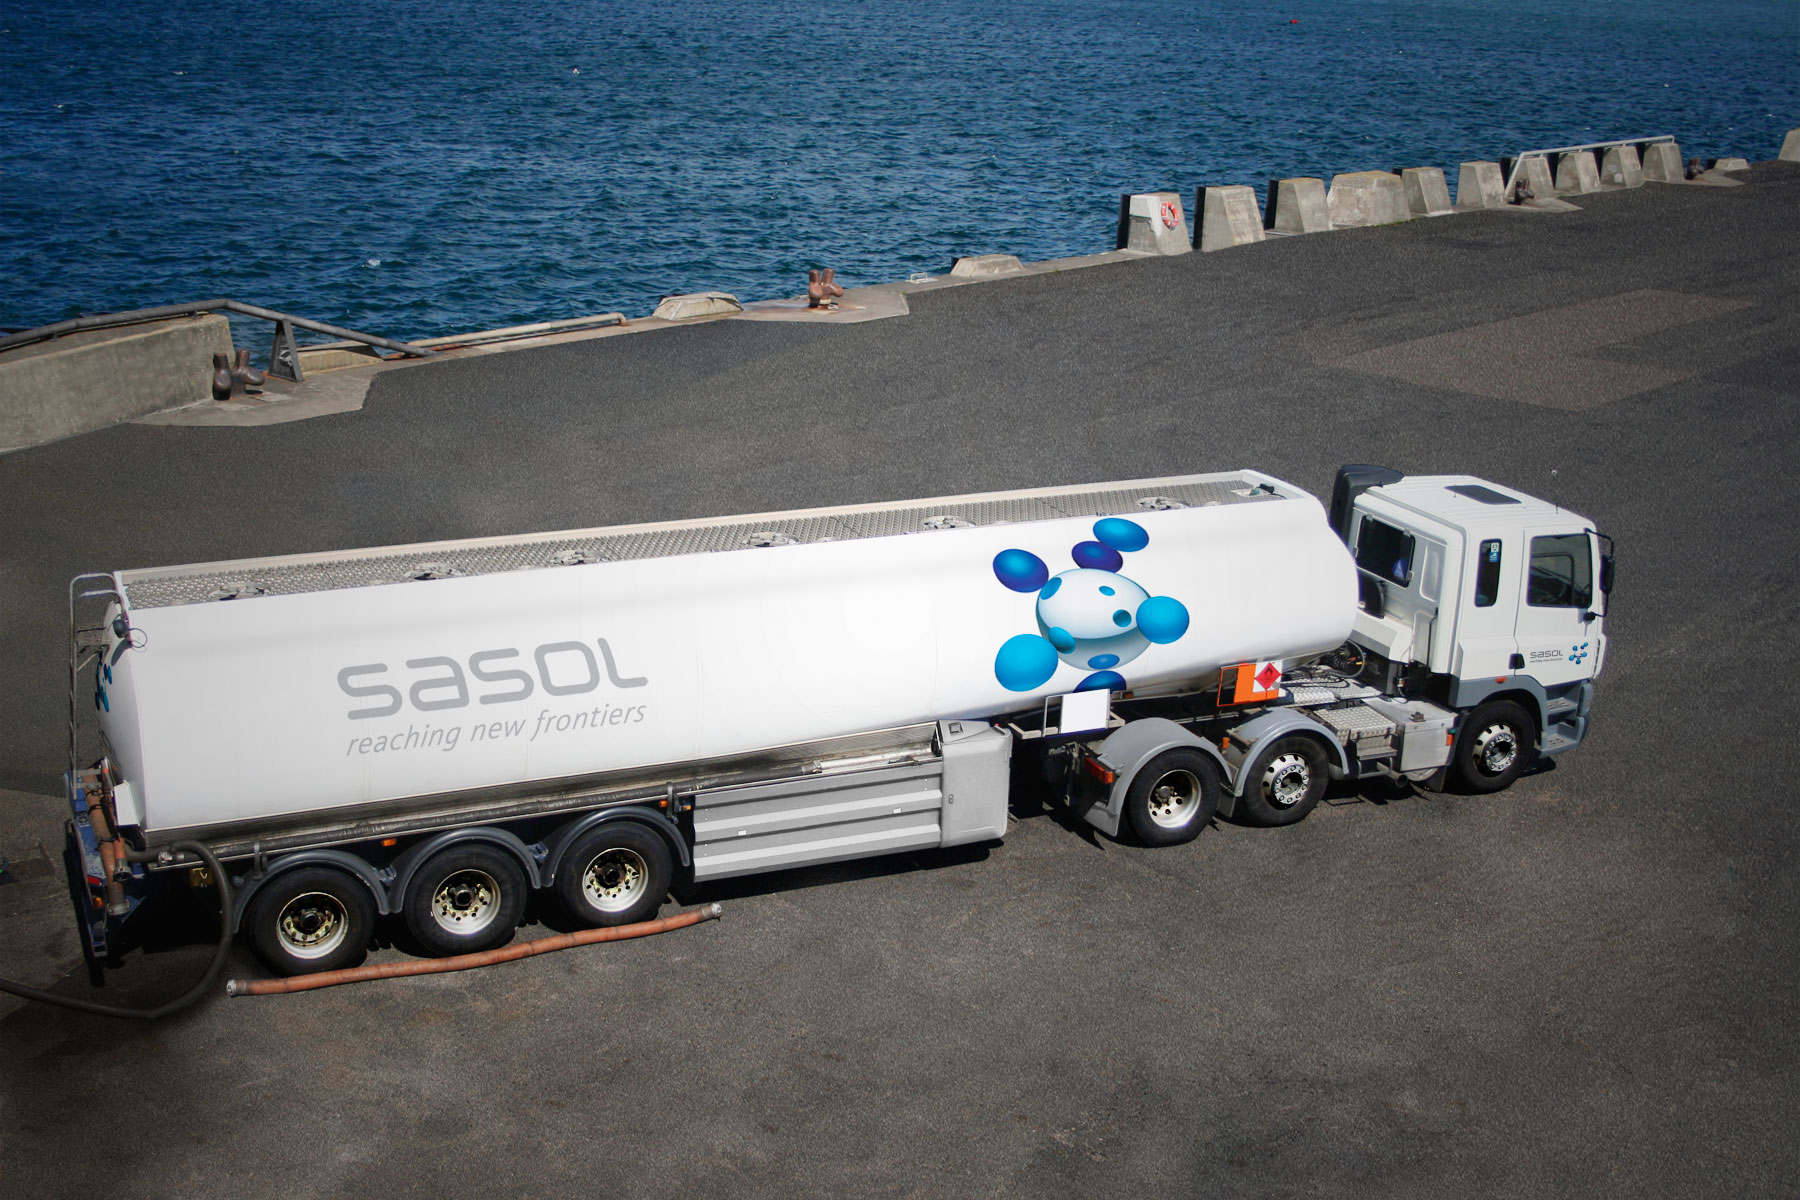 Sasol has a large fleet of all types of vehicles. Guidelines were produced for all shapes and sizes.